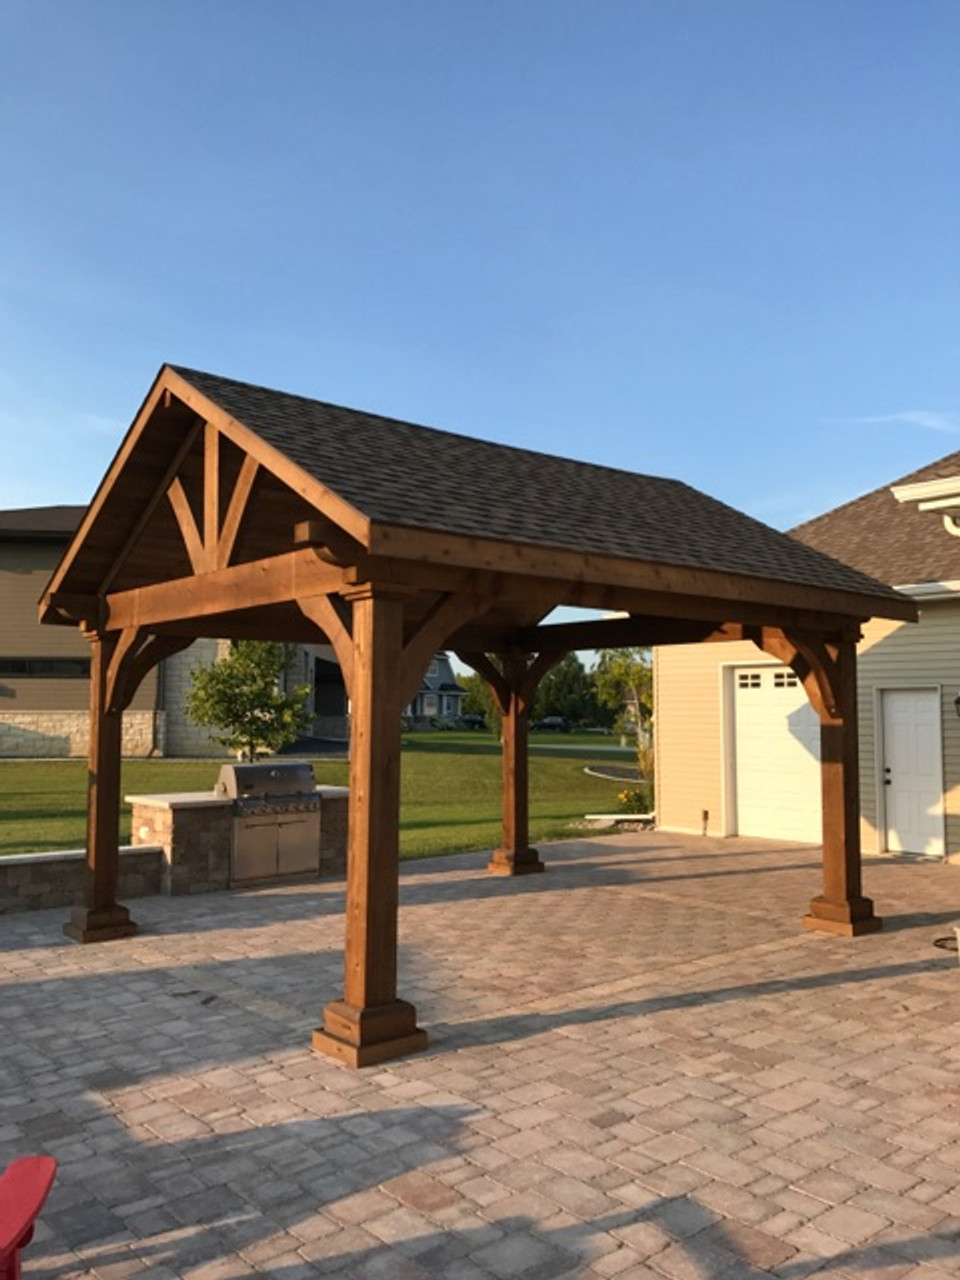 """14x16 (outside post dimension) Grand Cedar Pavilion, Roof Span 16'-8"""" x 18'-0"""", Rough Sawn Western Red Cedar, Walnut Stain, Weathered Wood roof shingles, electrical trim kit, Tongue & Groove Ceiling, Posts 1ft taller. Grand Forks, North Dakota."""